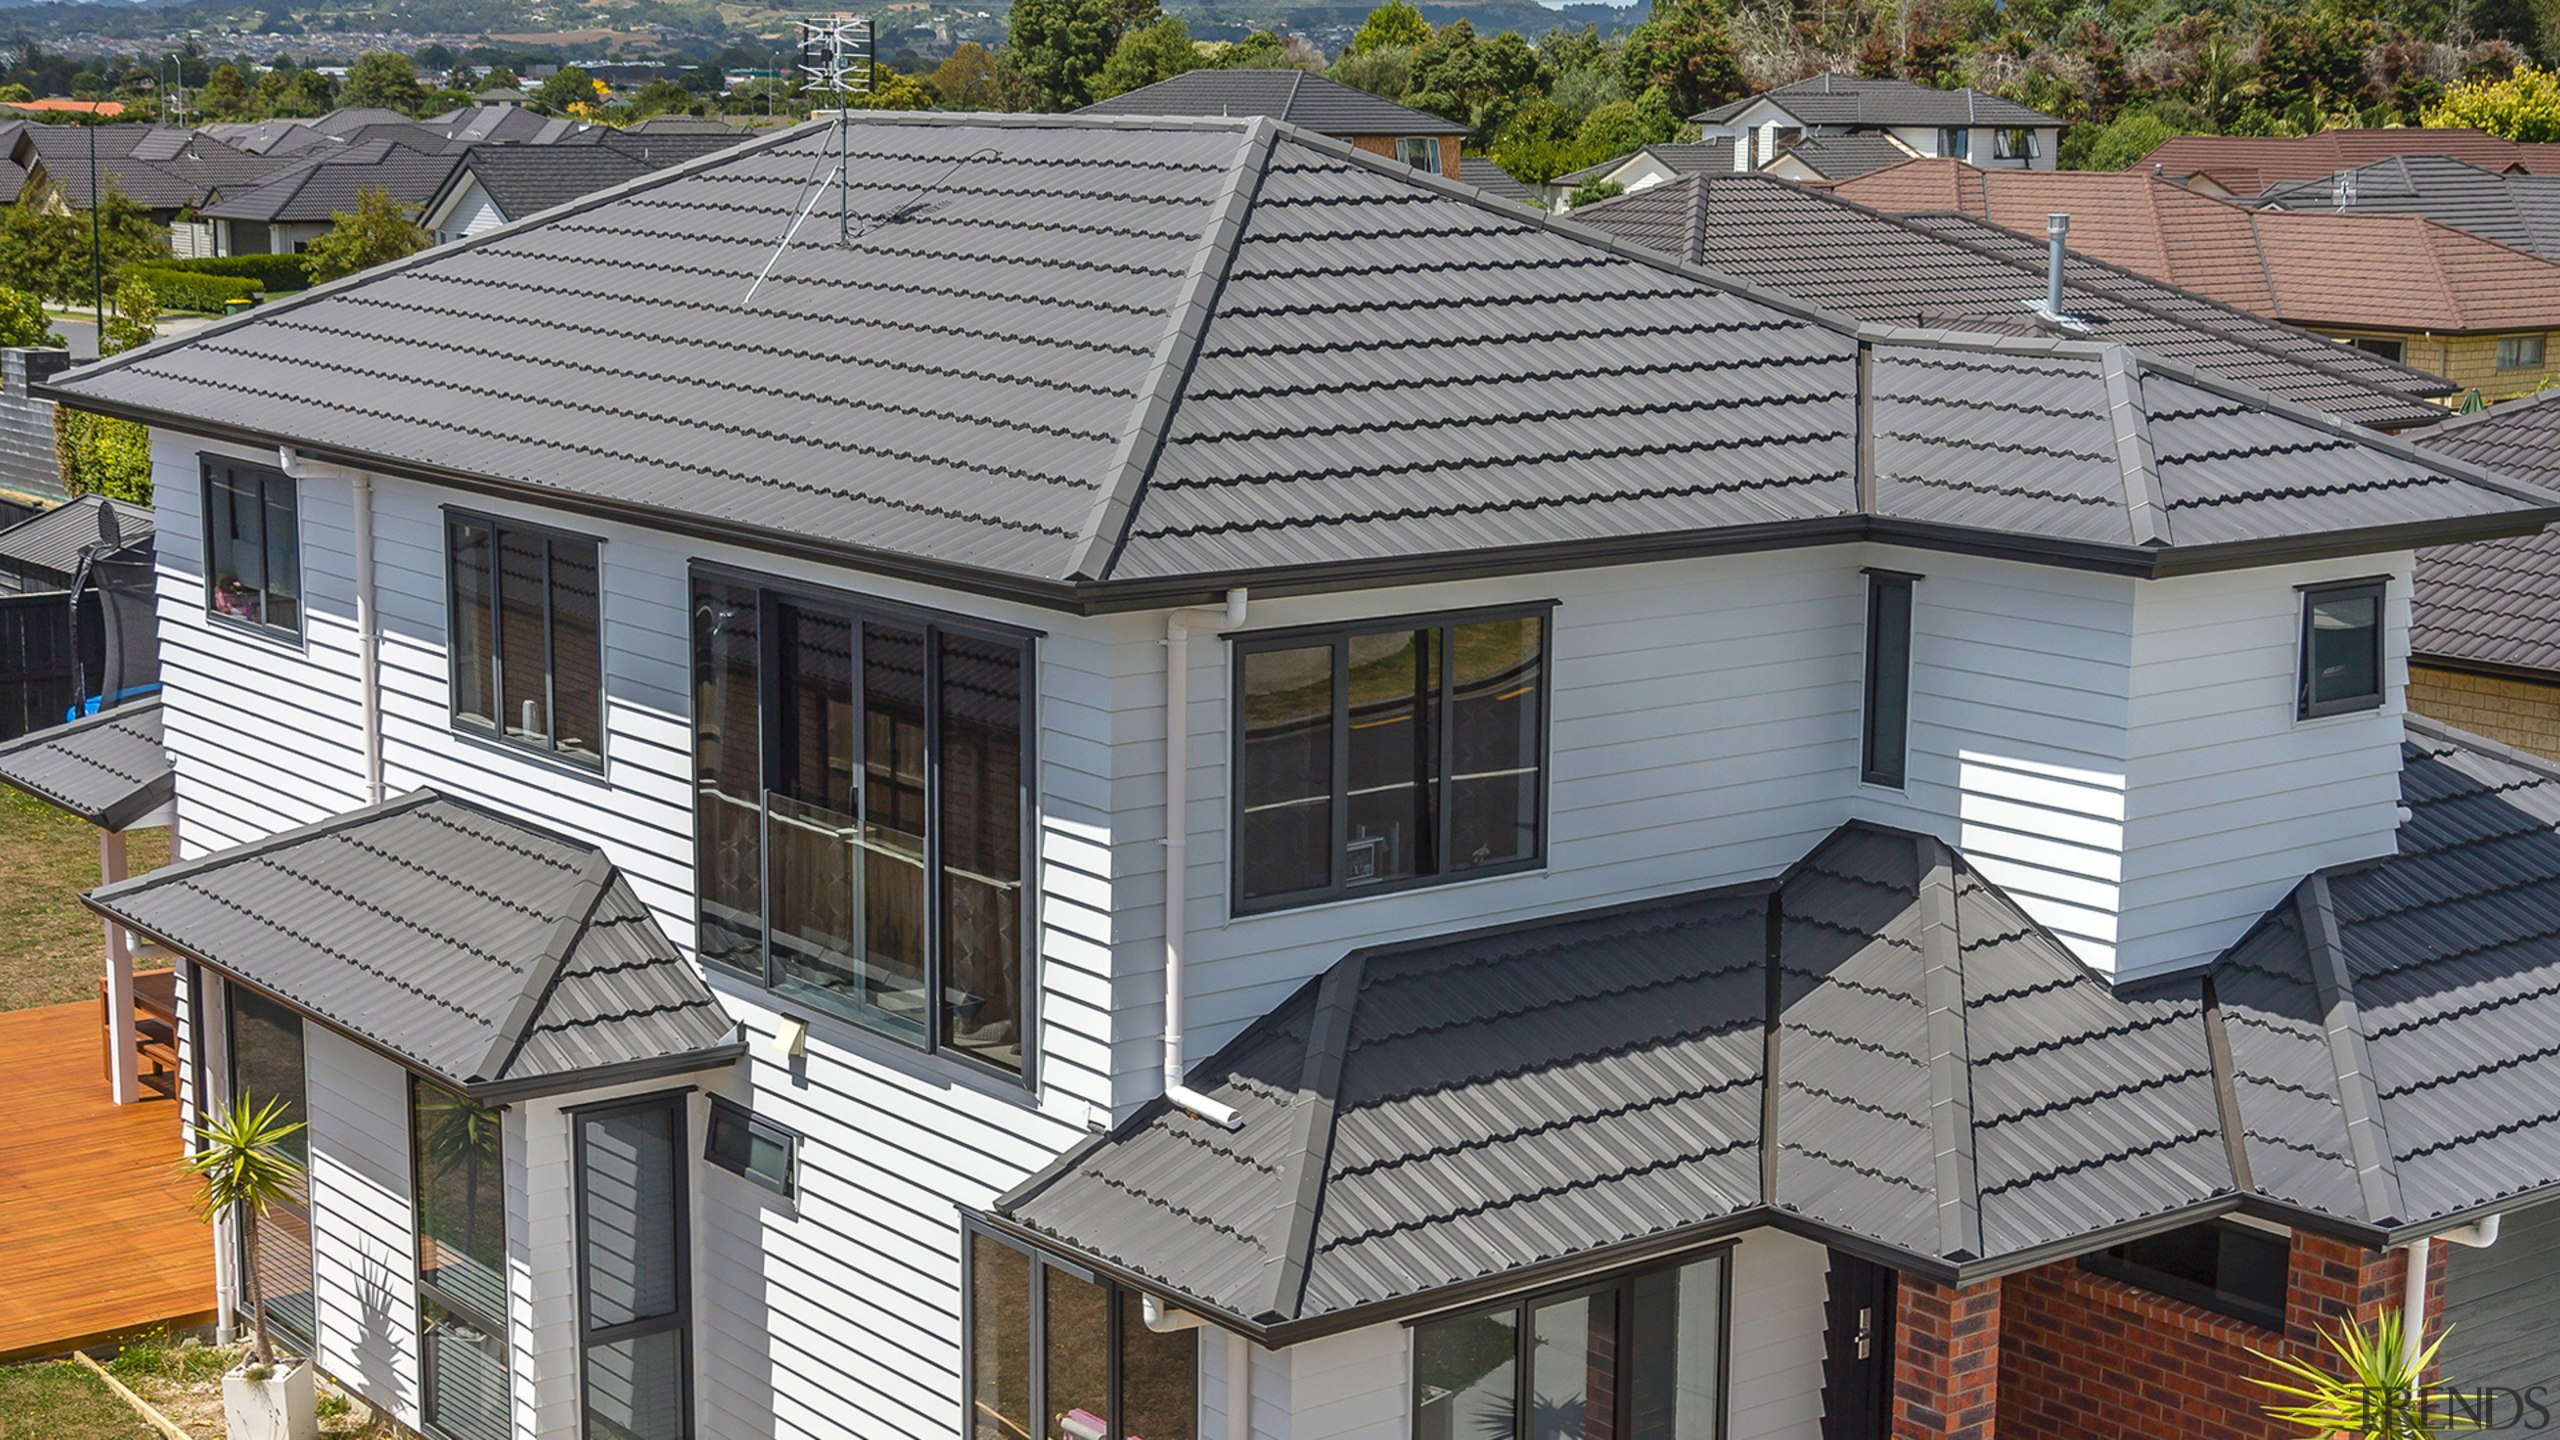 22 - building | elevation | facade | building, elevation, facade, home, house, neighbourhood, outdoor structure, property, real estate, residential area, roof, siding, gray